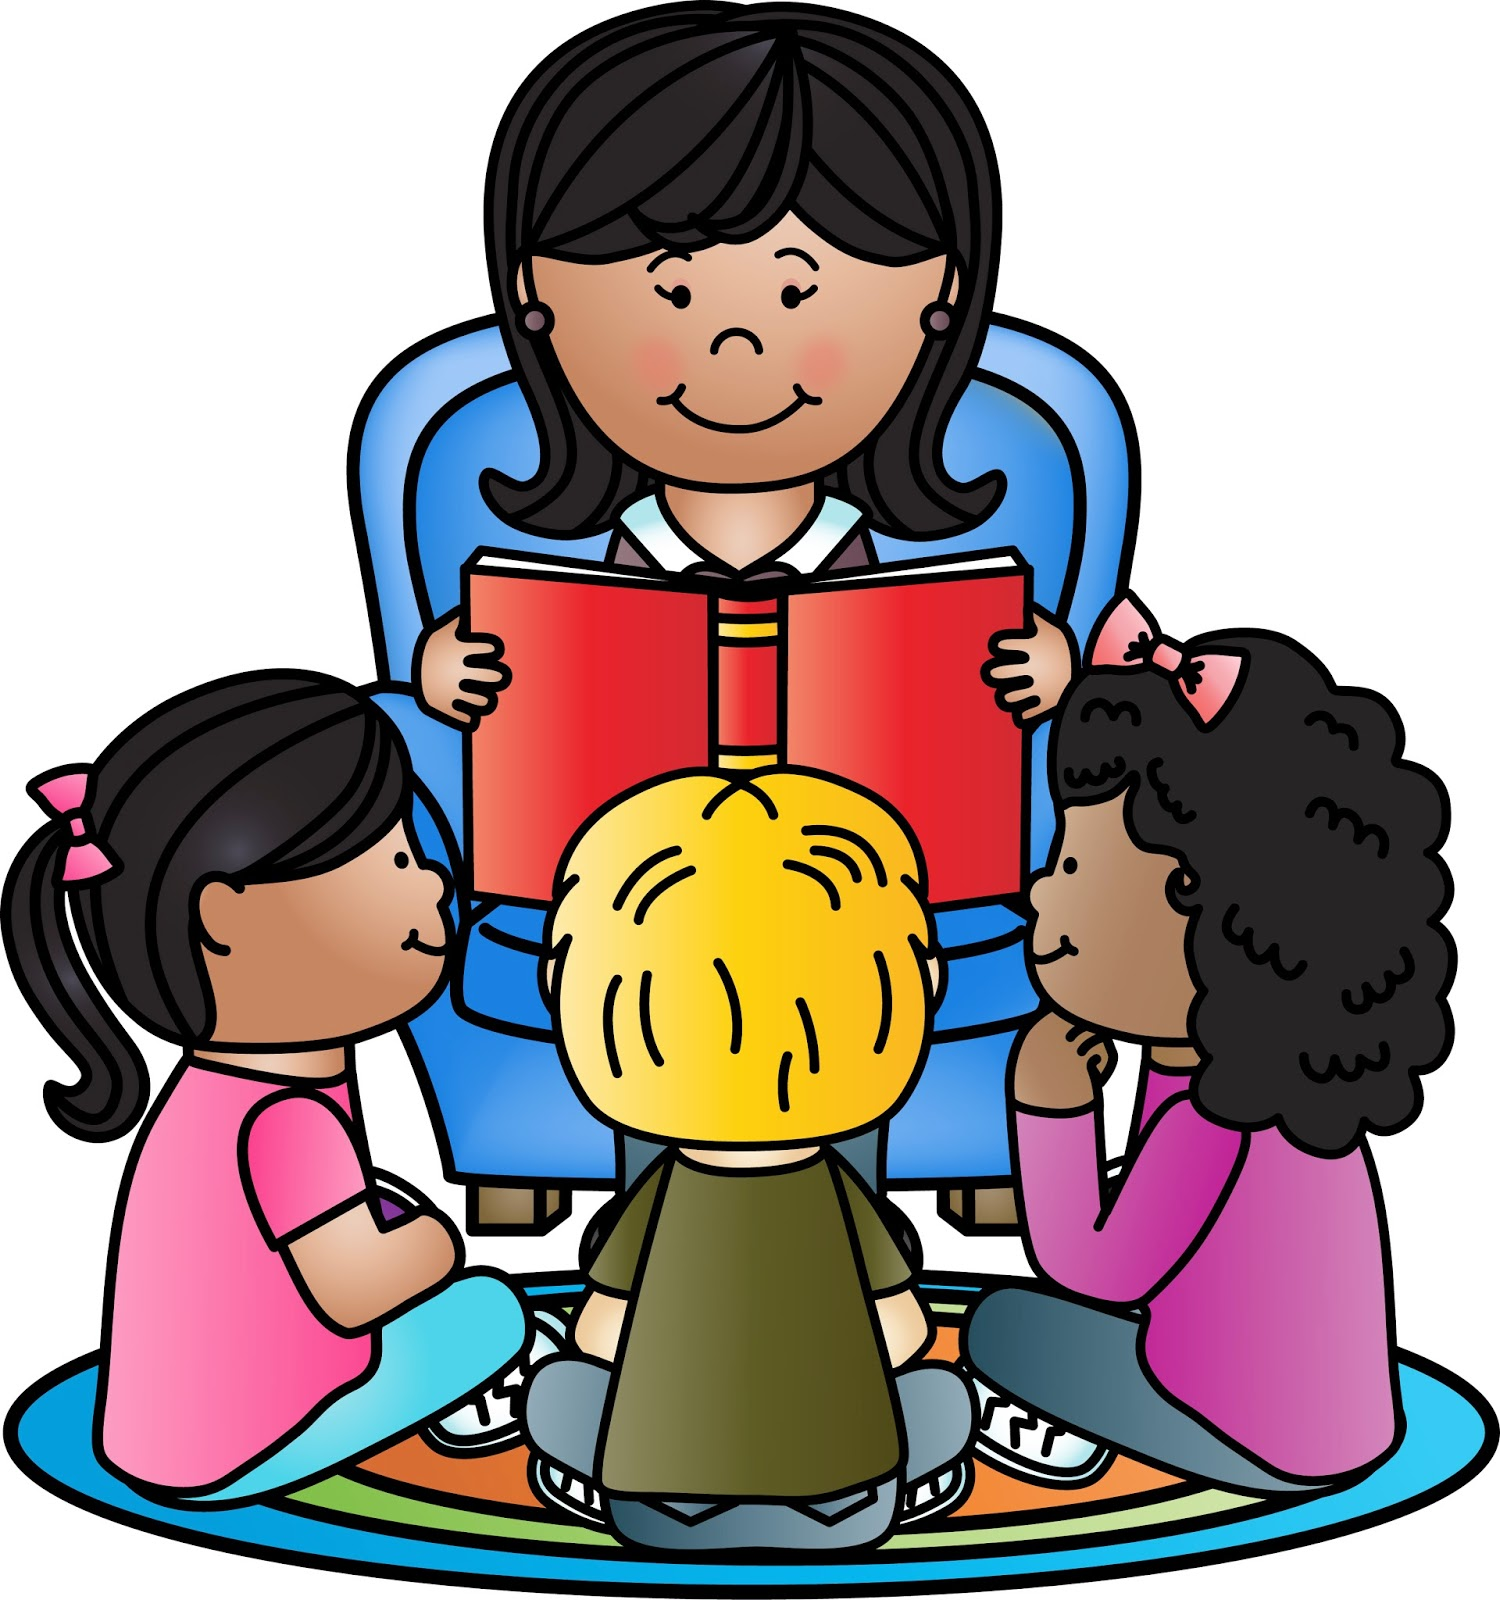 image transparent download Teacher reading to students clipart. Free student cliparts download